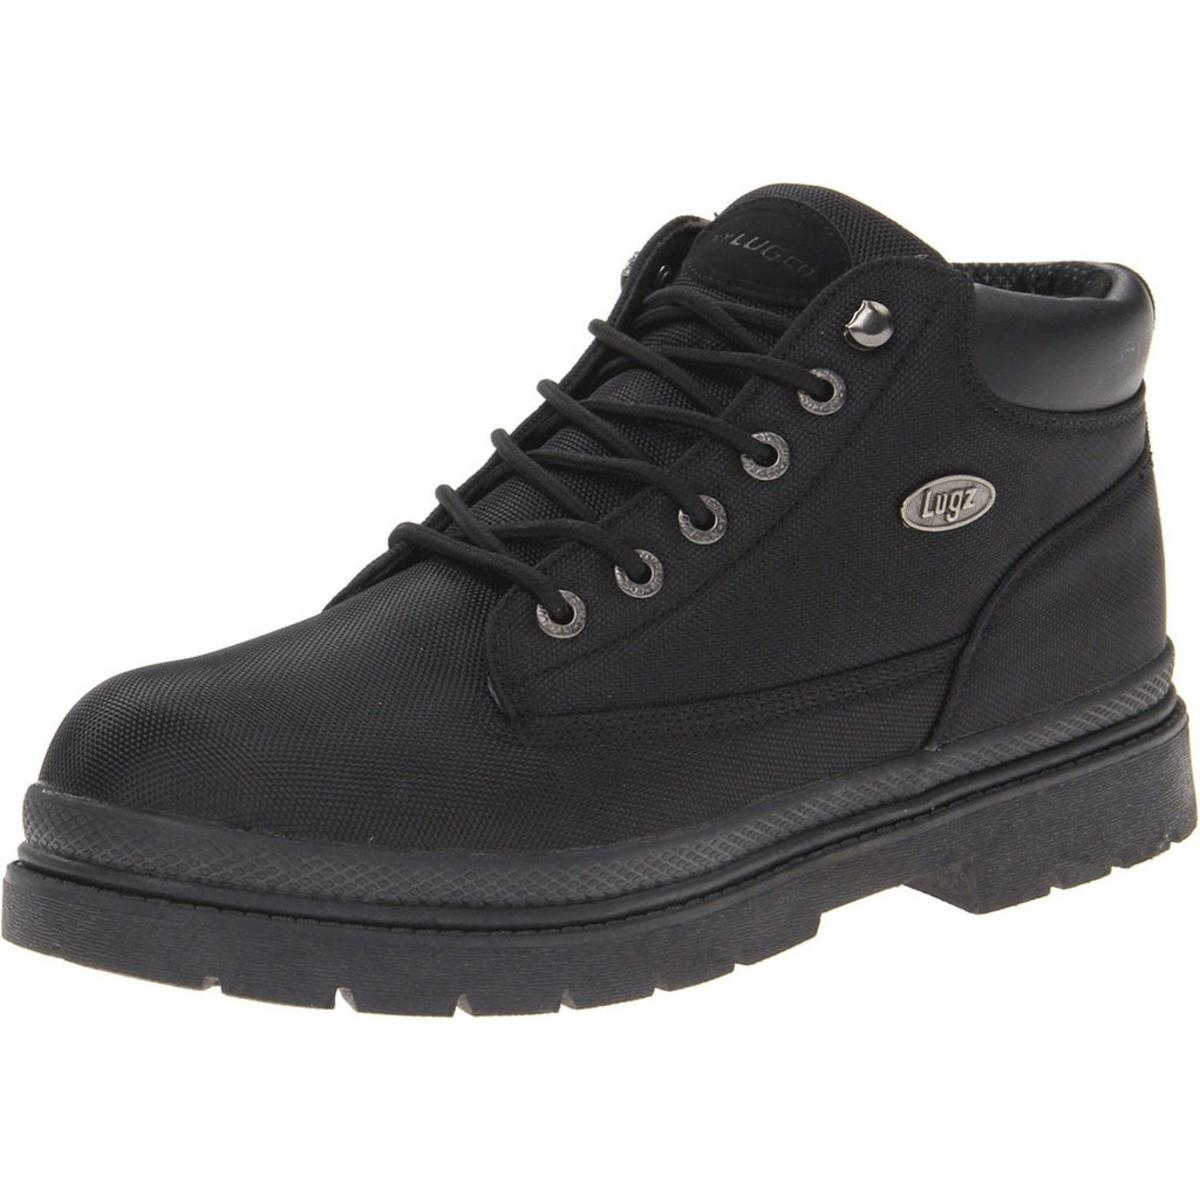 Click here to buy Lugz Drifter Ballistic Mens Black Boots by Lugz.